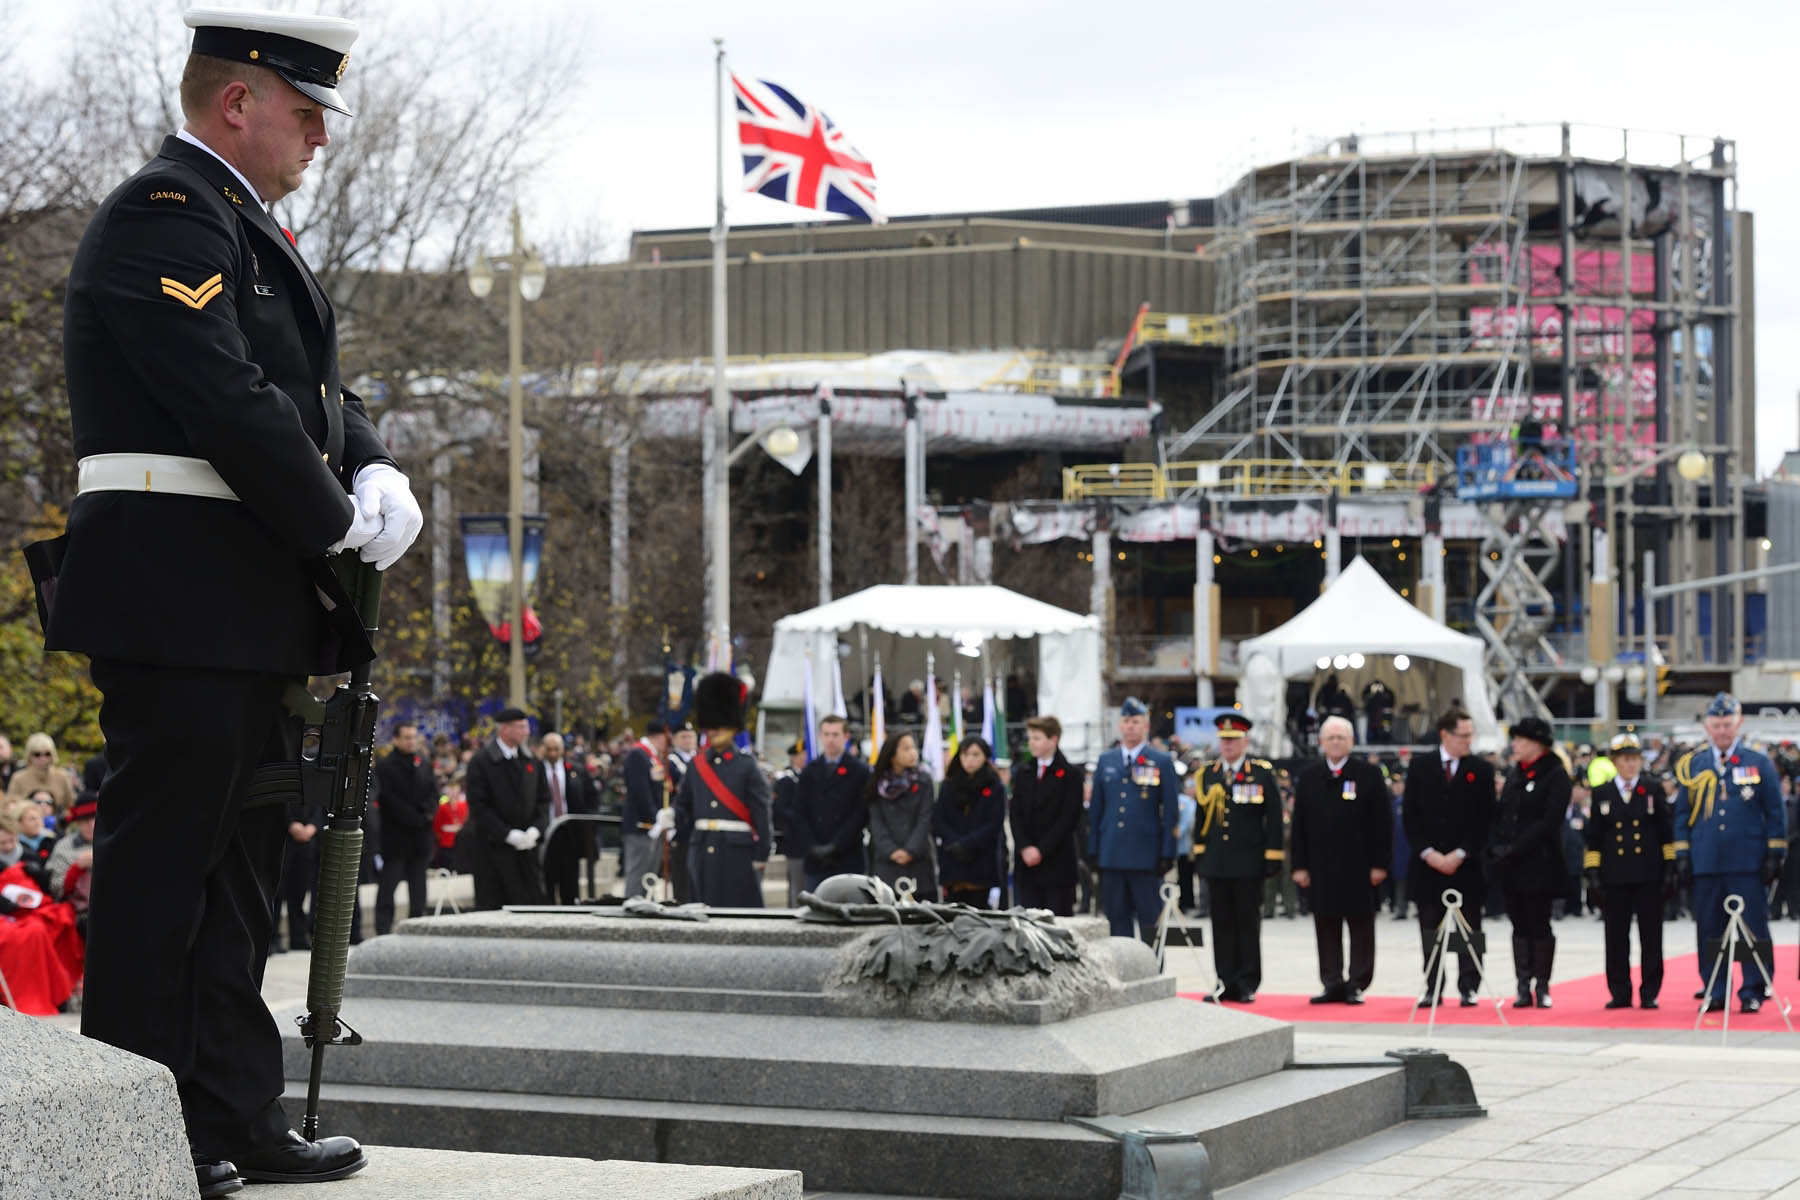 During the ceremony there were two minutes of silence to honour, thank and remember our fallen soldiers.